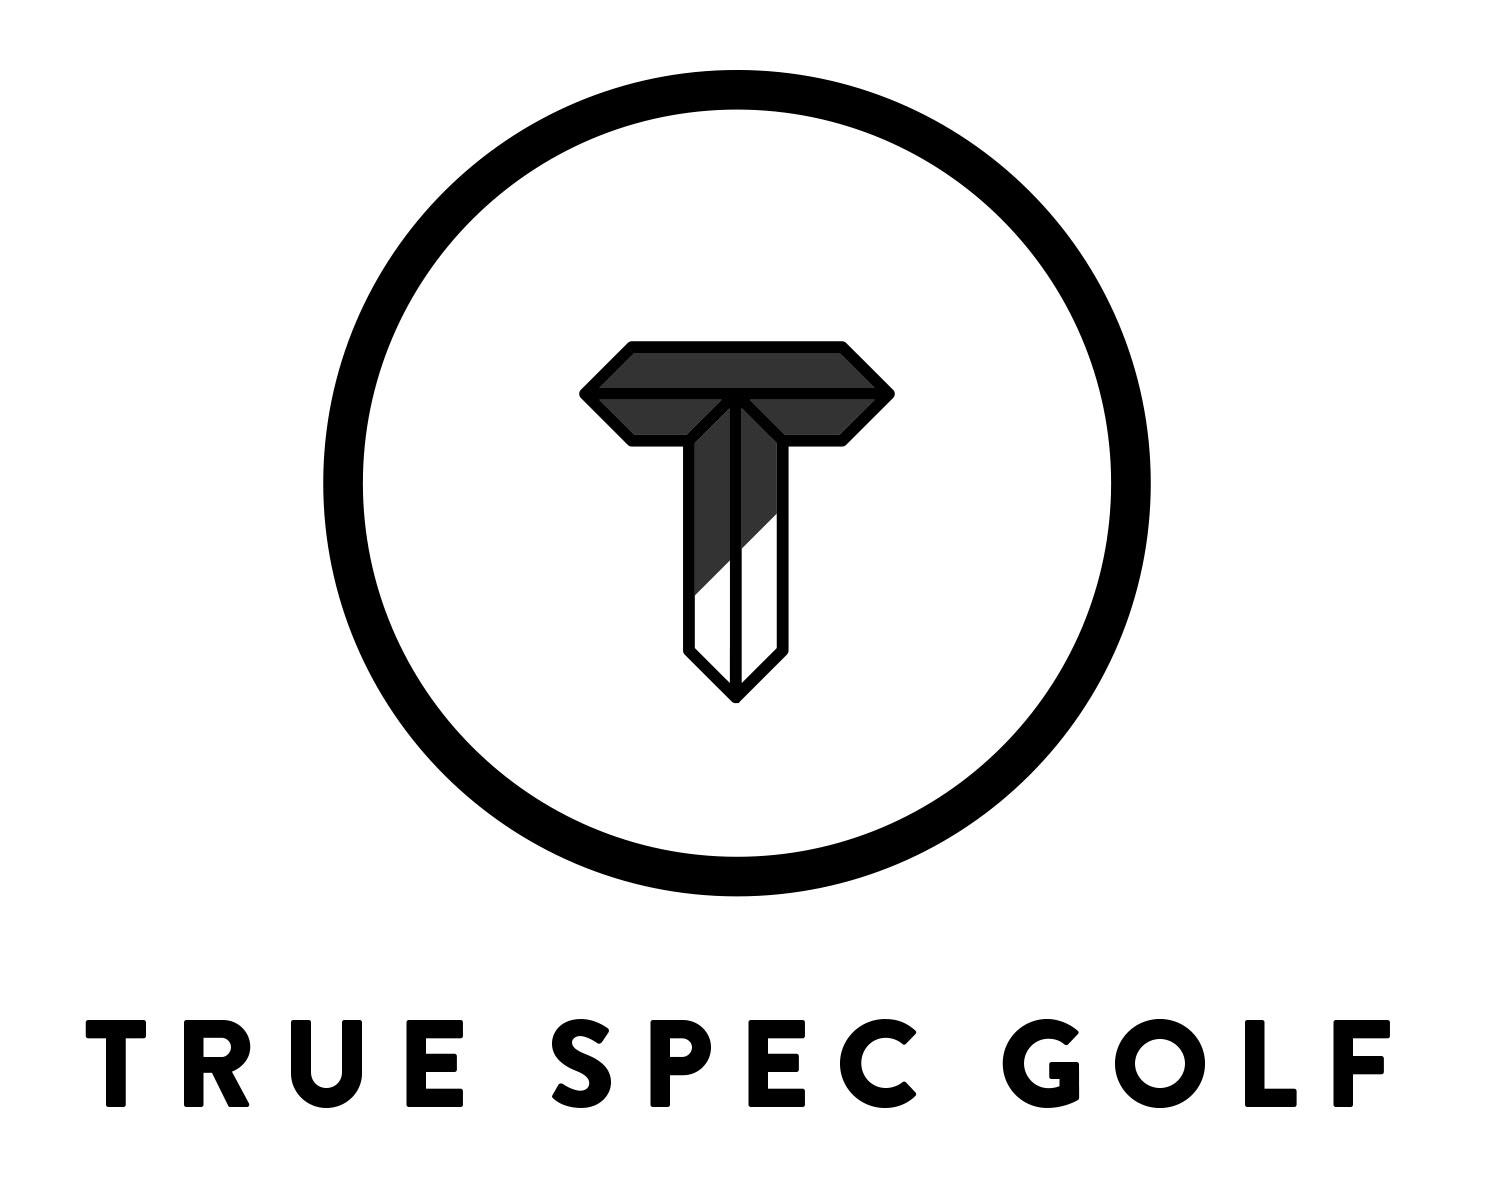 TRUE SPEC GOLF, GOLF CLUB BONMONT